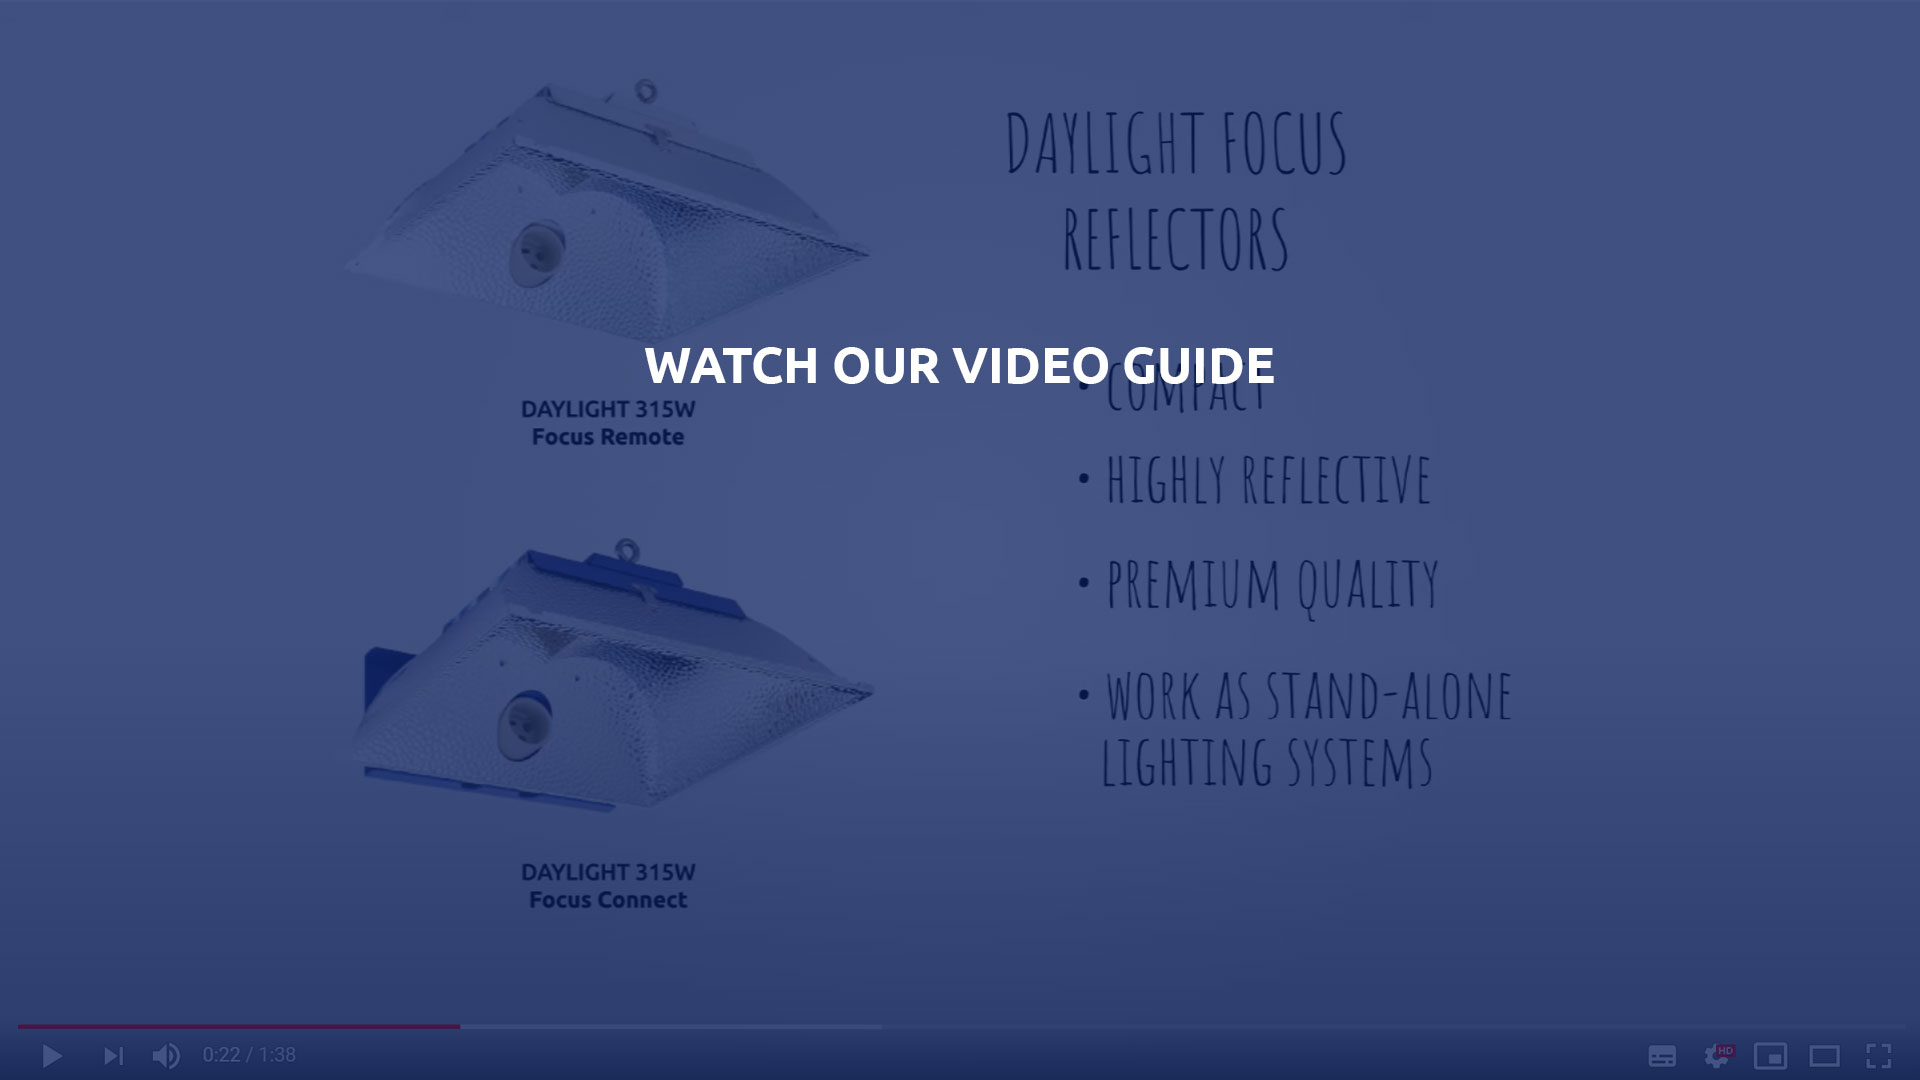 DAYLIGHT_Focus_Reflector_Guide